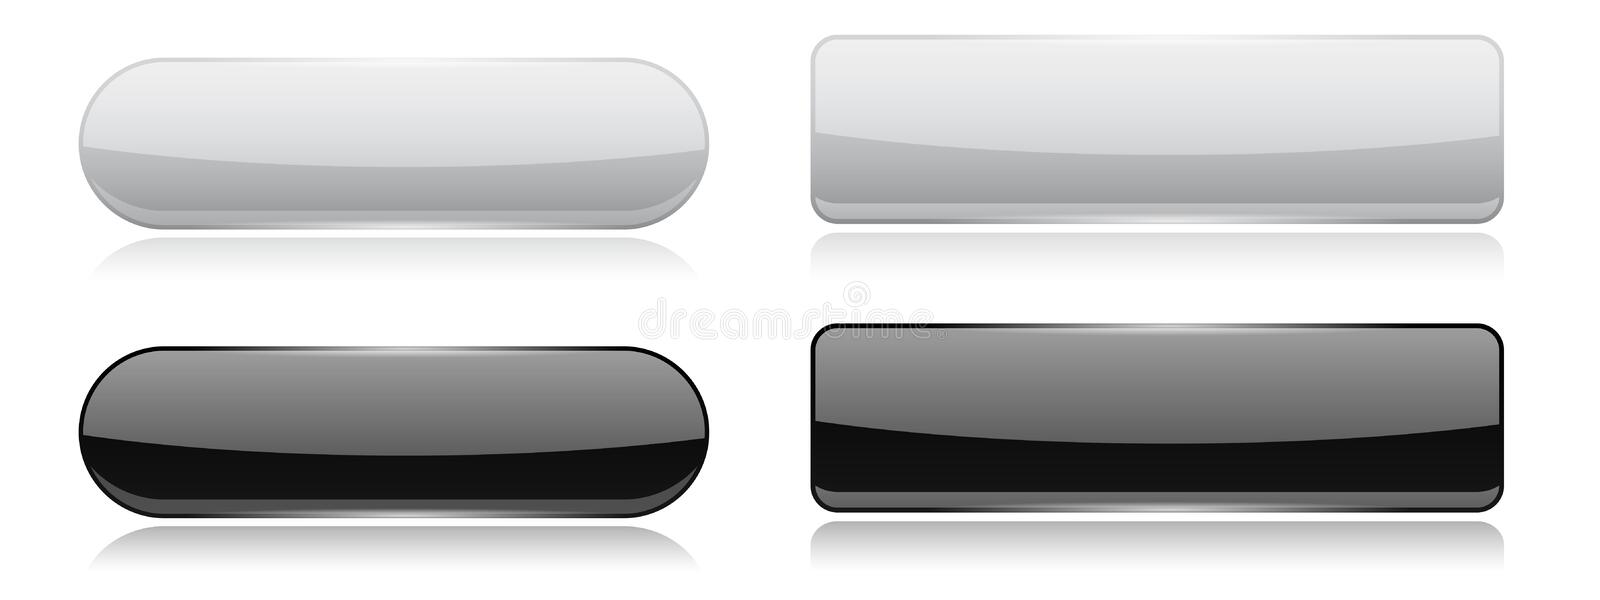 Black and white glass buttons. Oval and rectangle 3d shiny icons. Vector illustration isolated on white background vector illustration